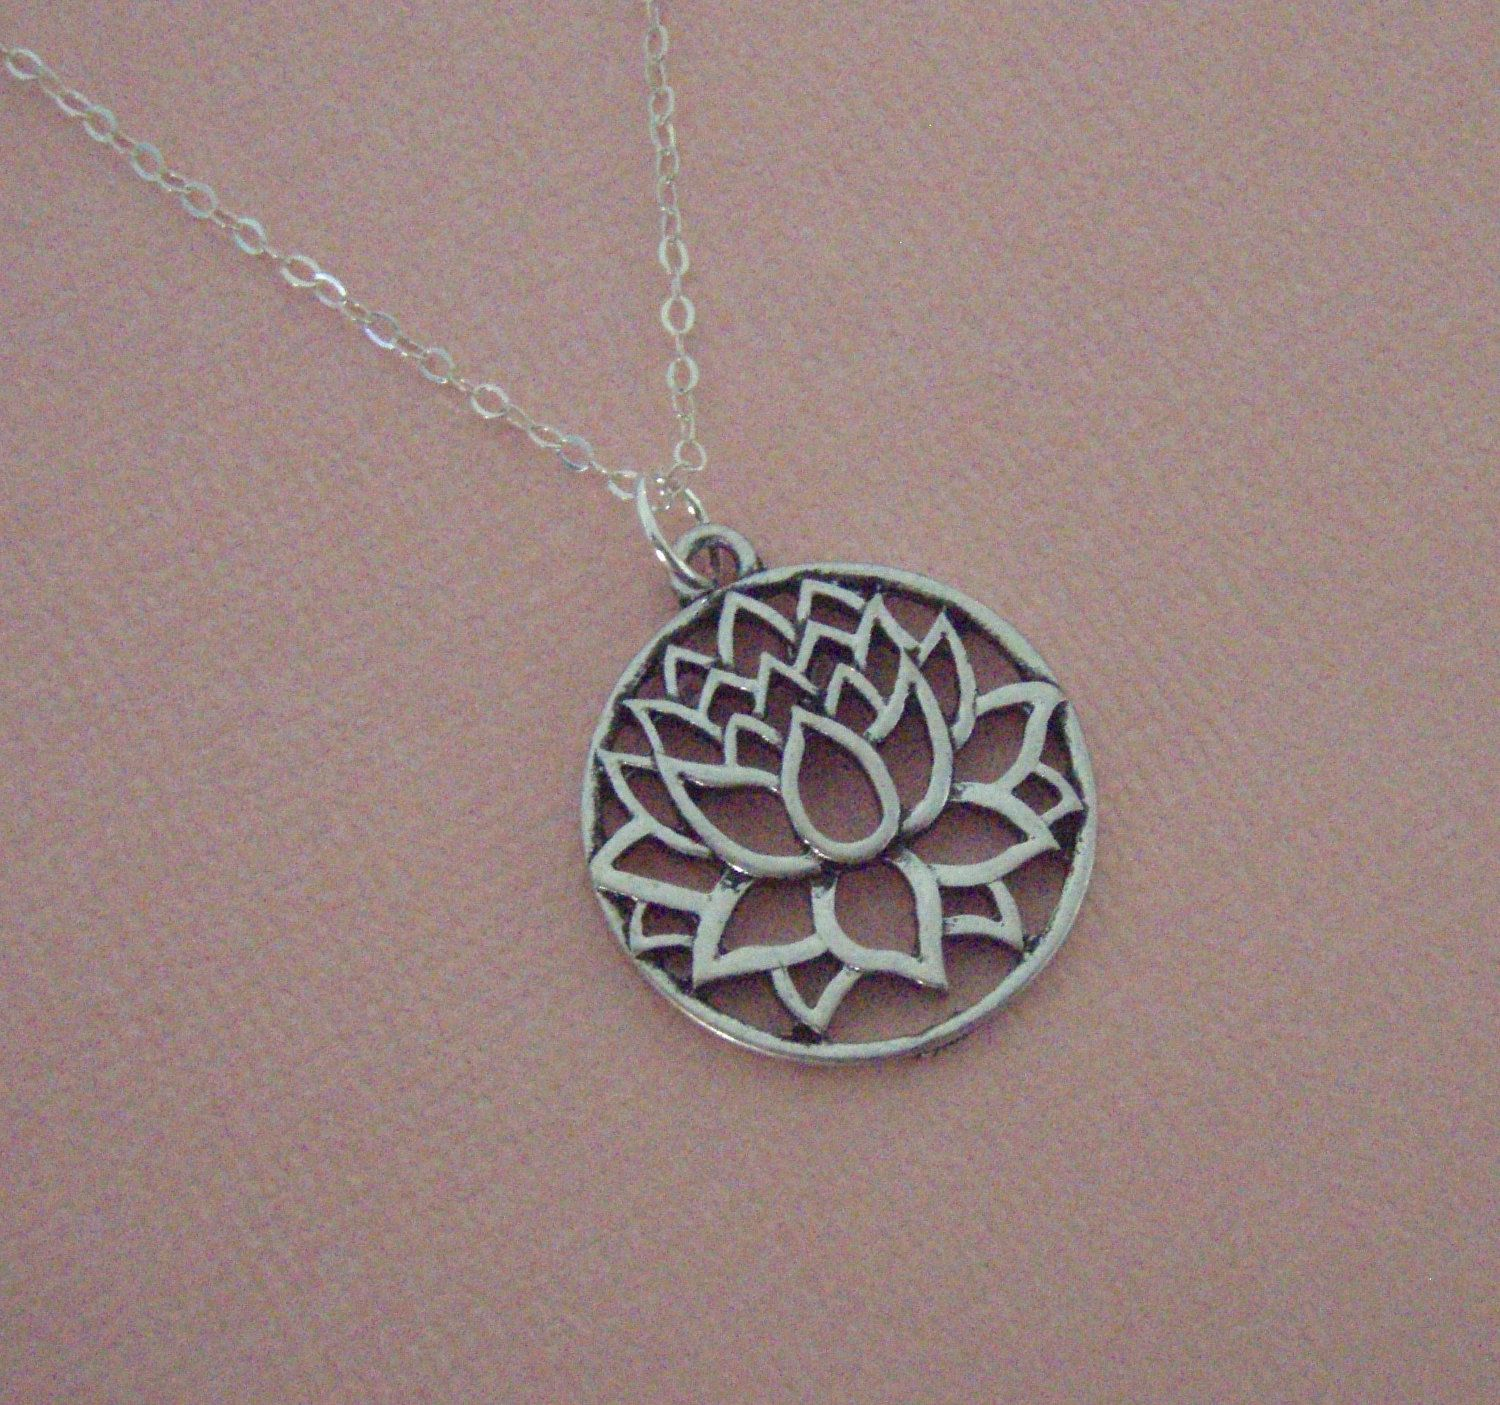 Silver lotus necklace sterling silver chain yoga jewelry silver silver lotus necklace sterling silver chain yoga jewelry silver jewelry filigree lotus izmirmasajfo Images